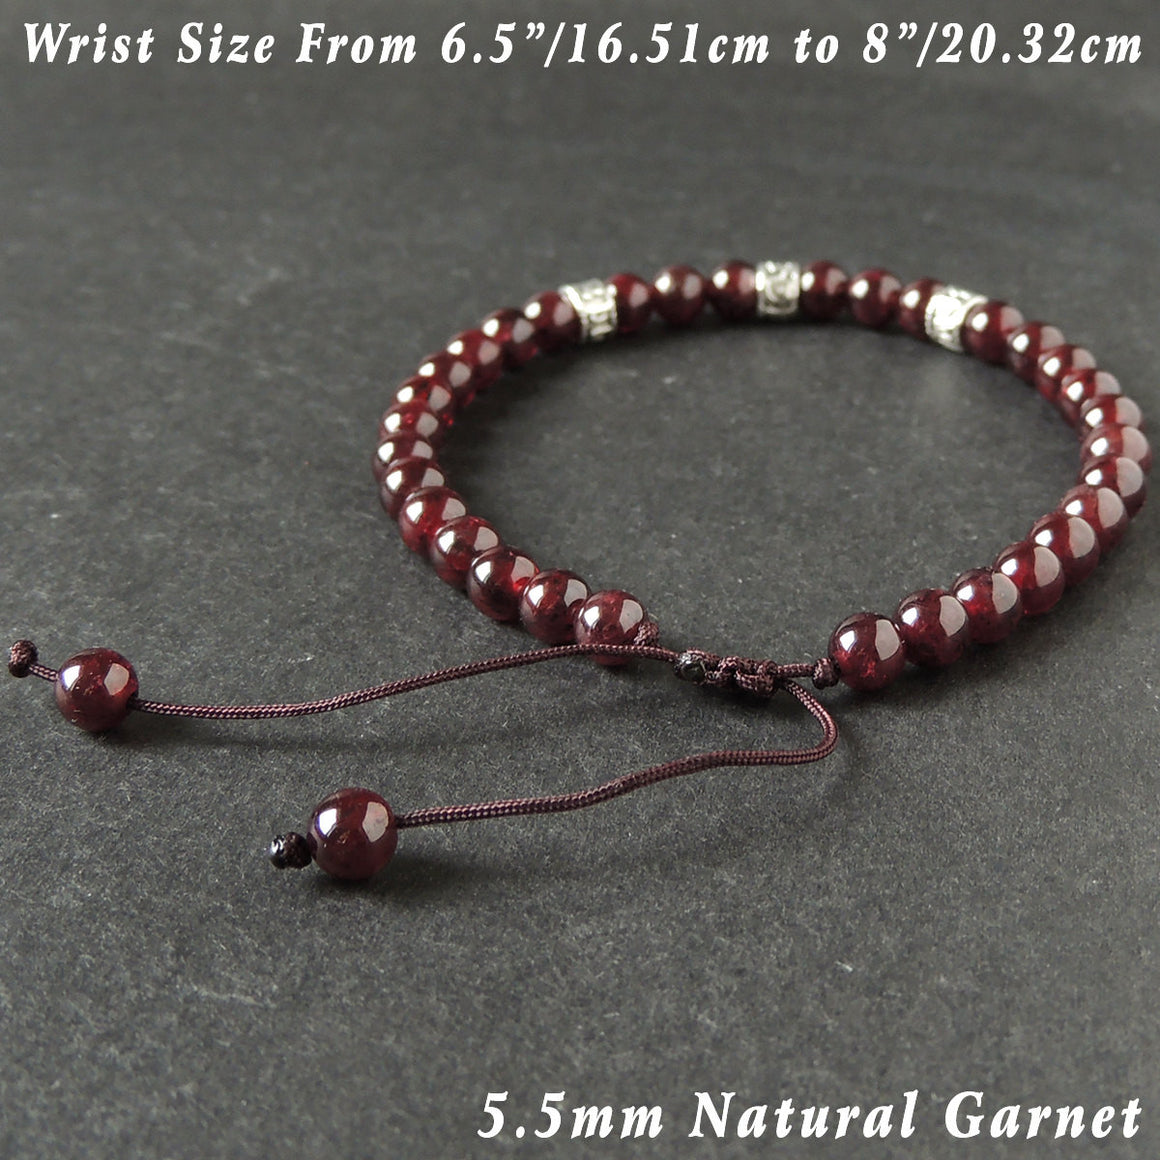 5.5mm Grade AAA Garnet Adjustable Braided Bracelet with Tibetan Silver OM Buddhism Spacers - Handmade by Gem & Silver TSB294